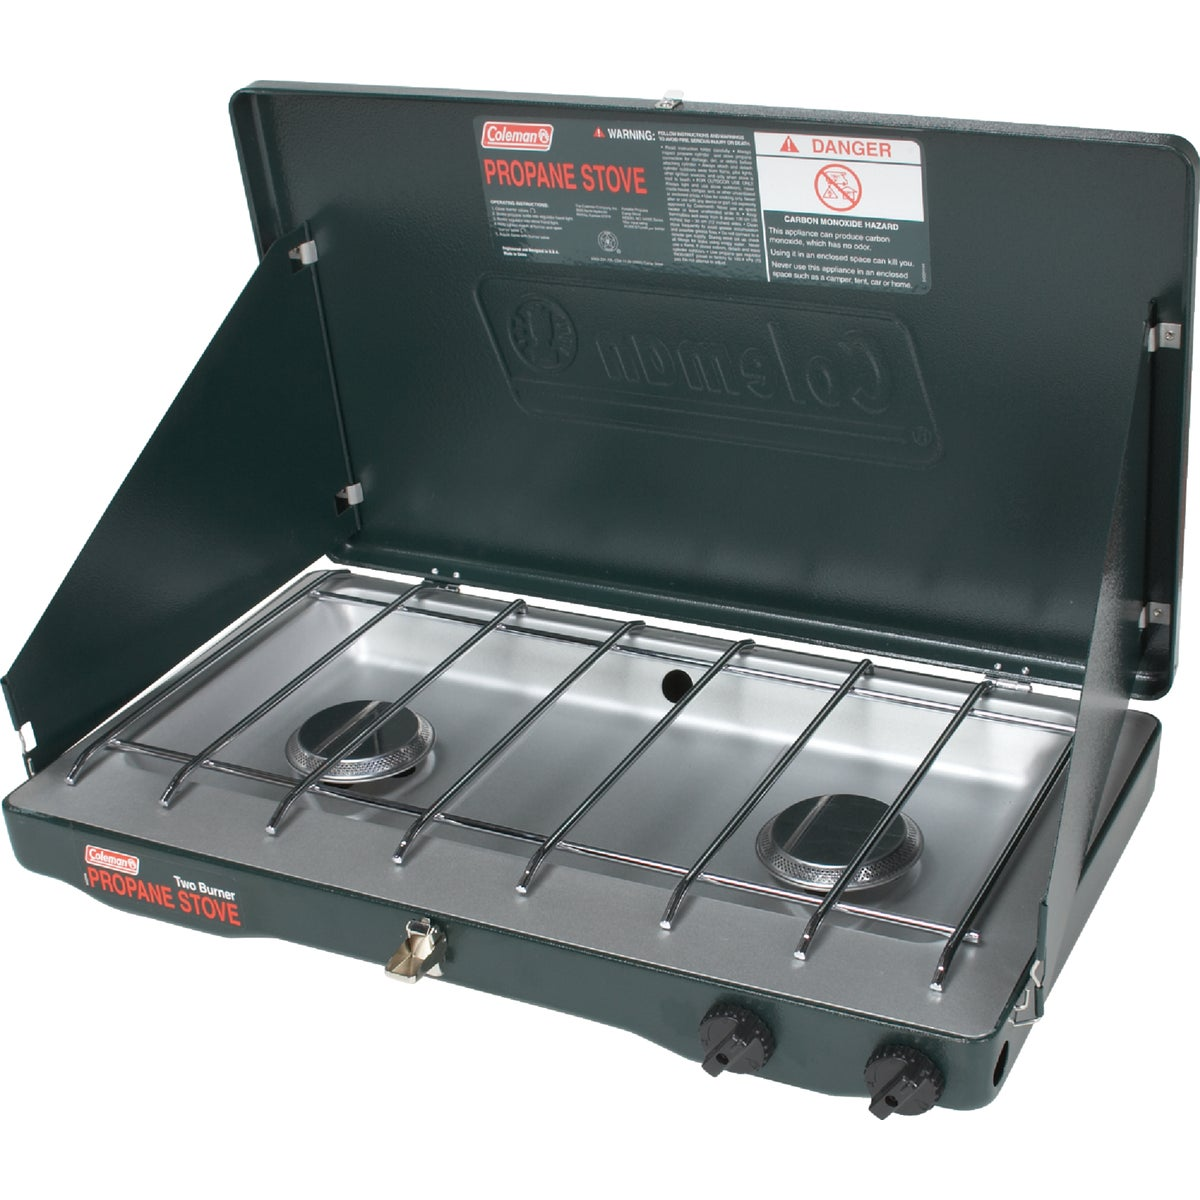 PROPANE STOVE - 2000007502 by Coleman